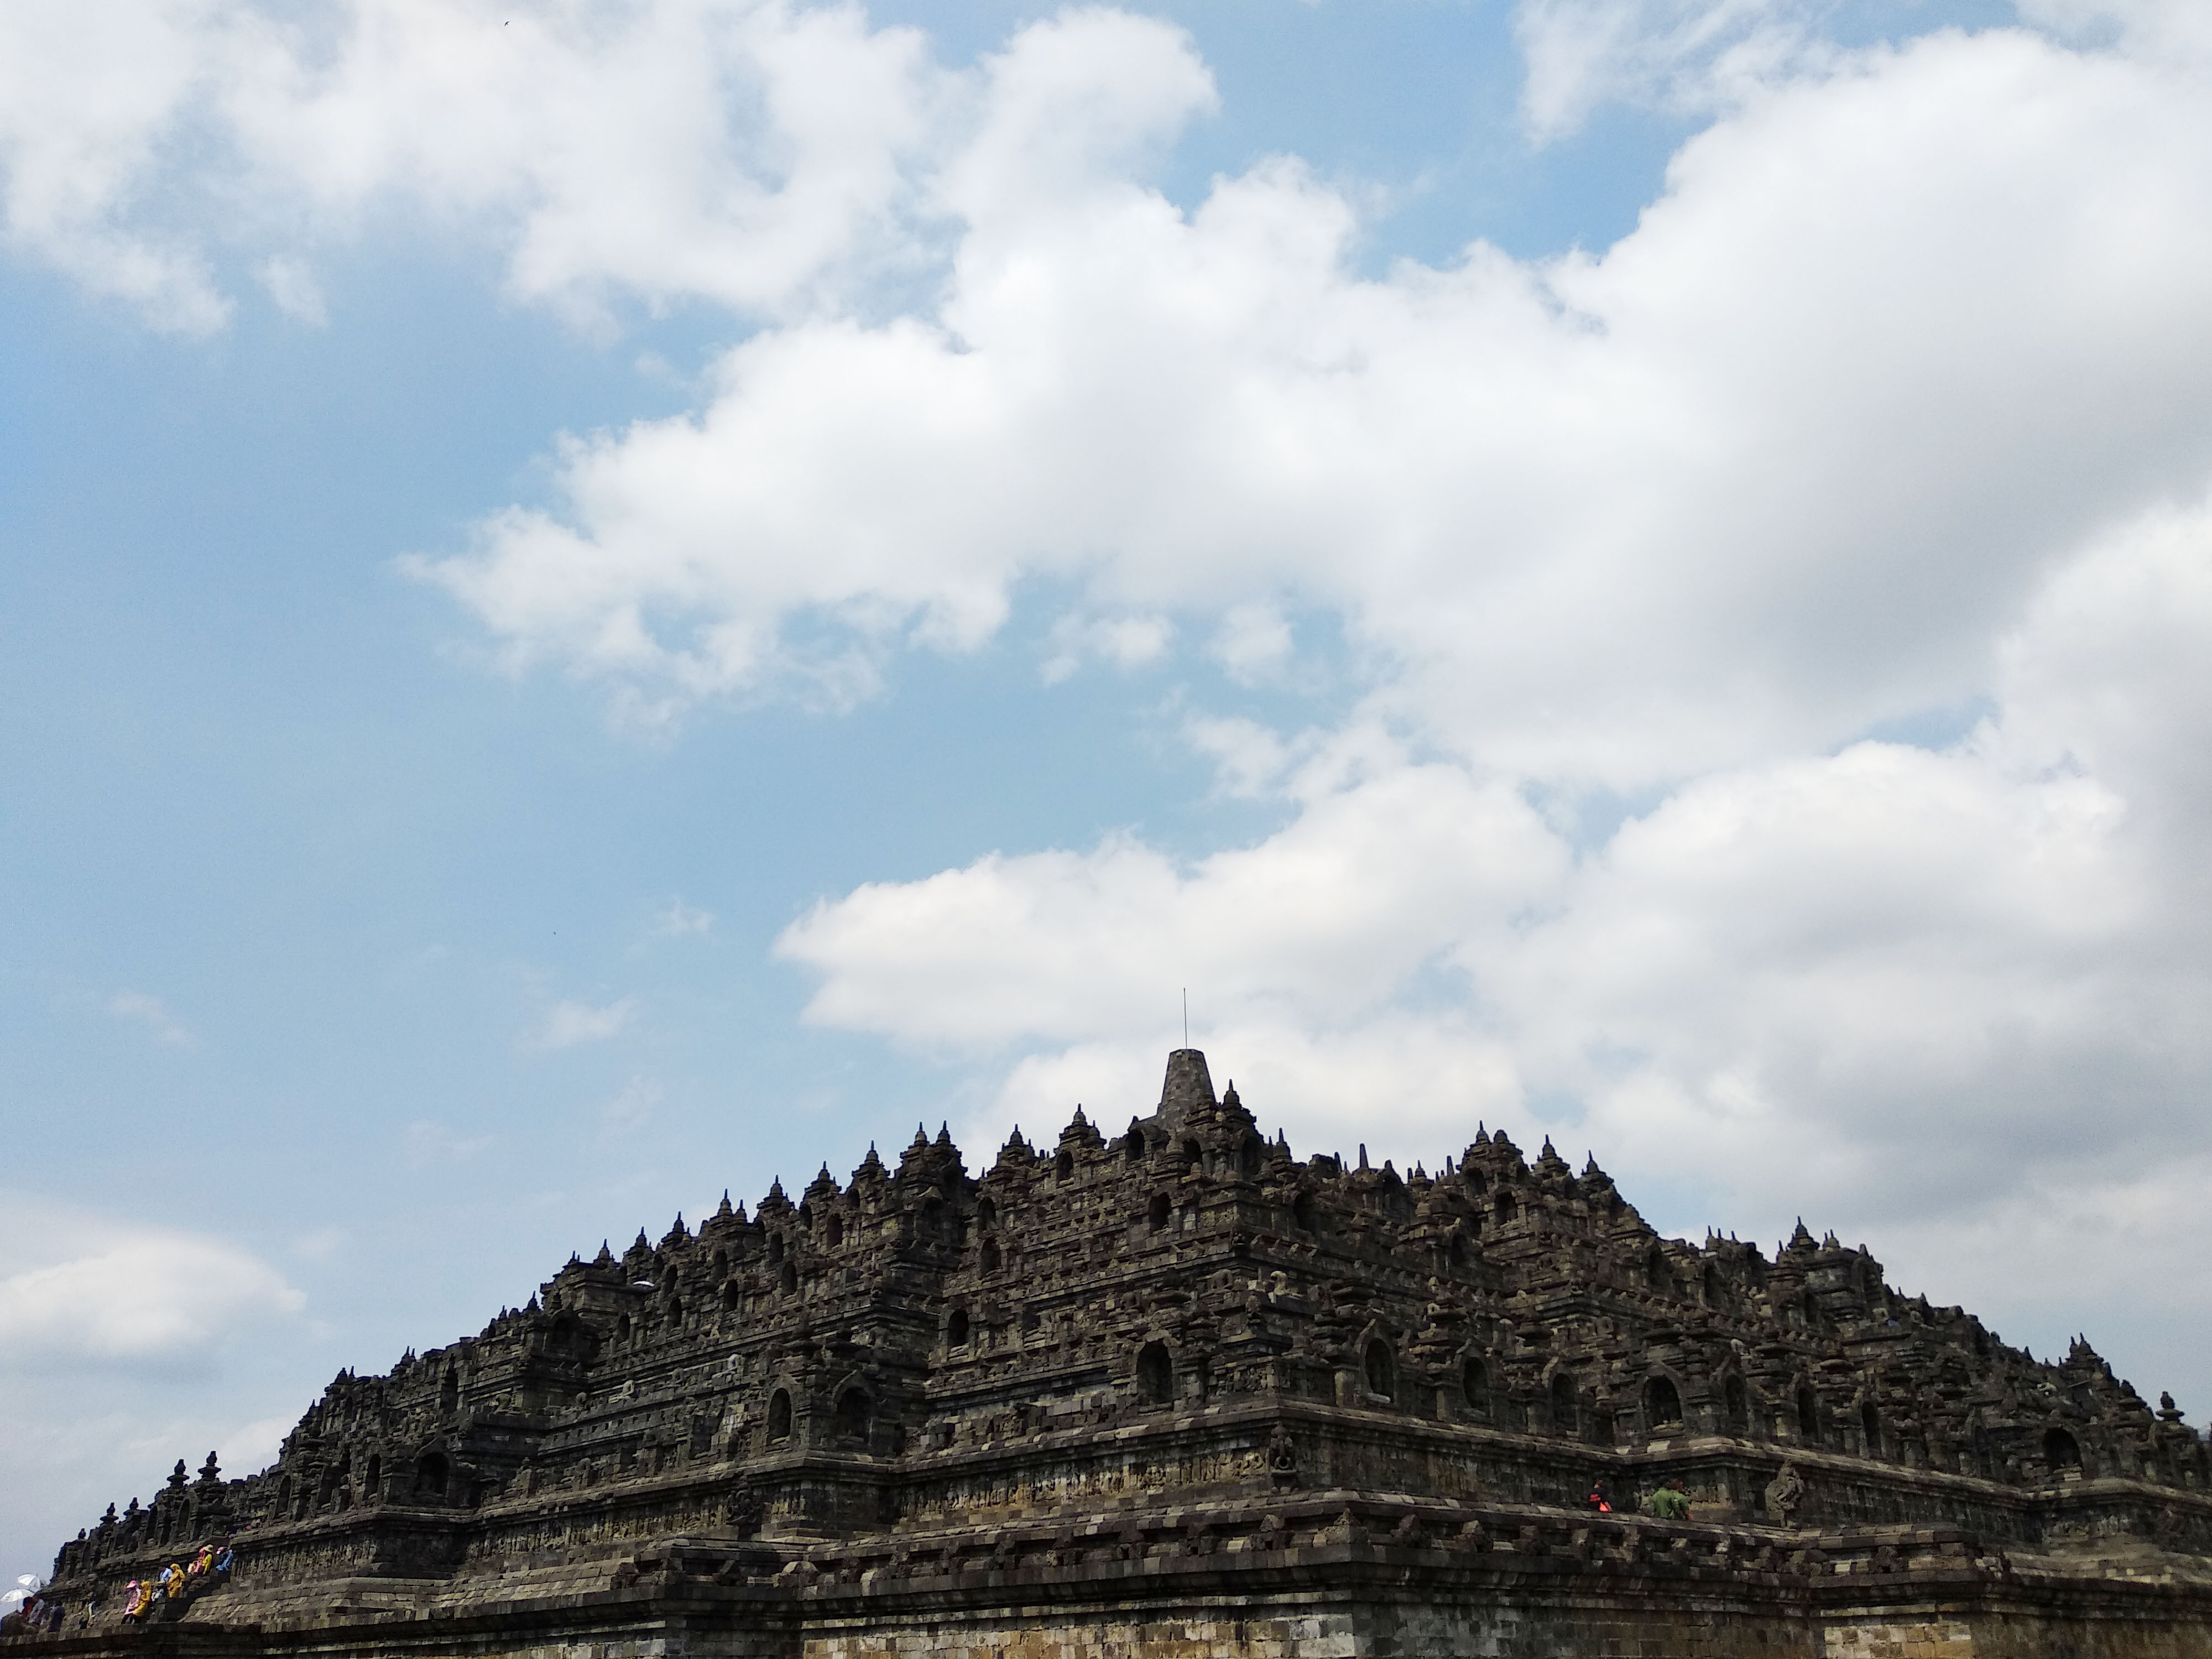 Time Traveling In The Mesmerizing Borobudur Temple